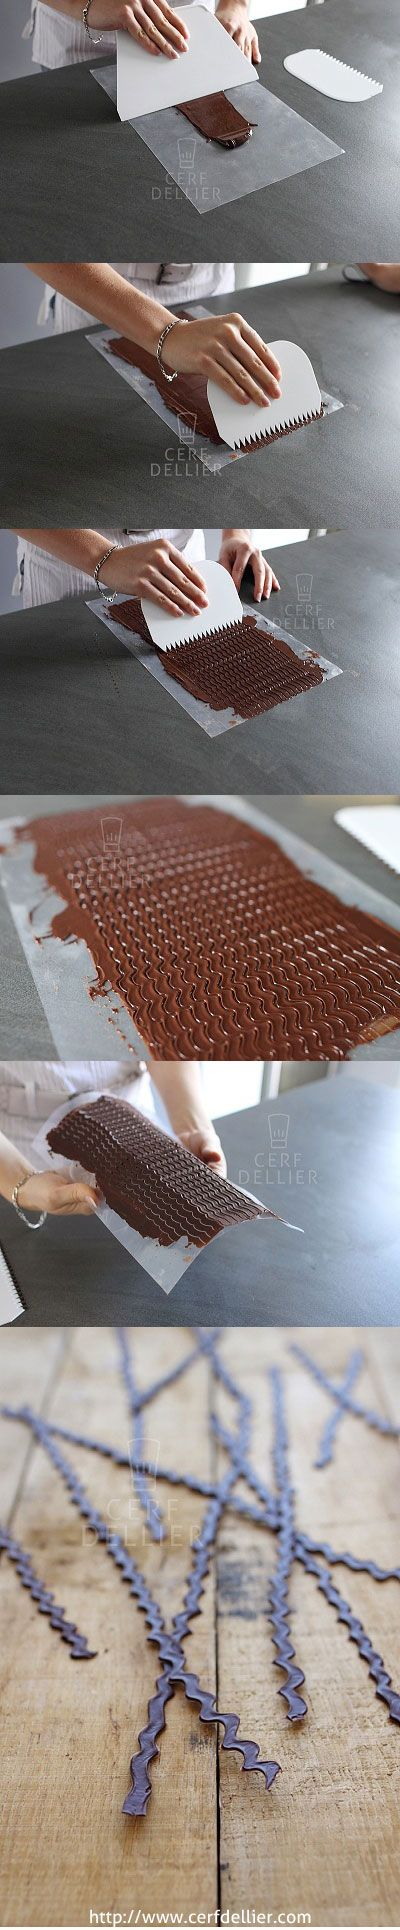 Chocolate strips